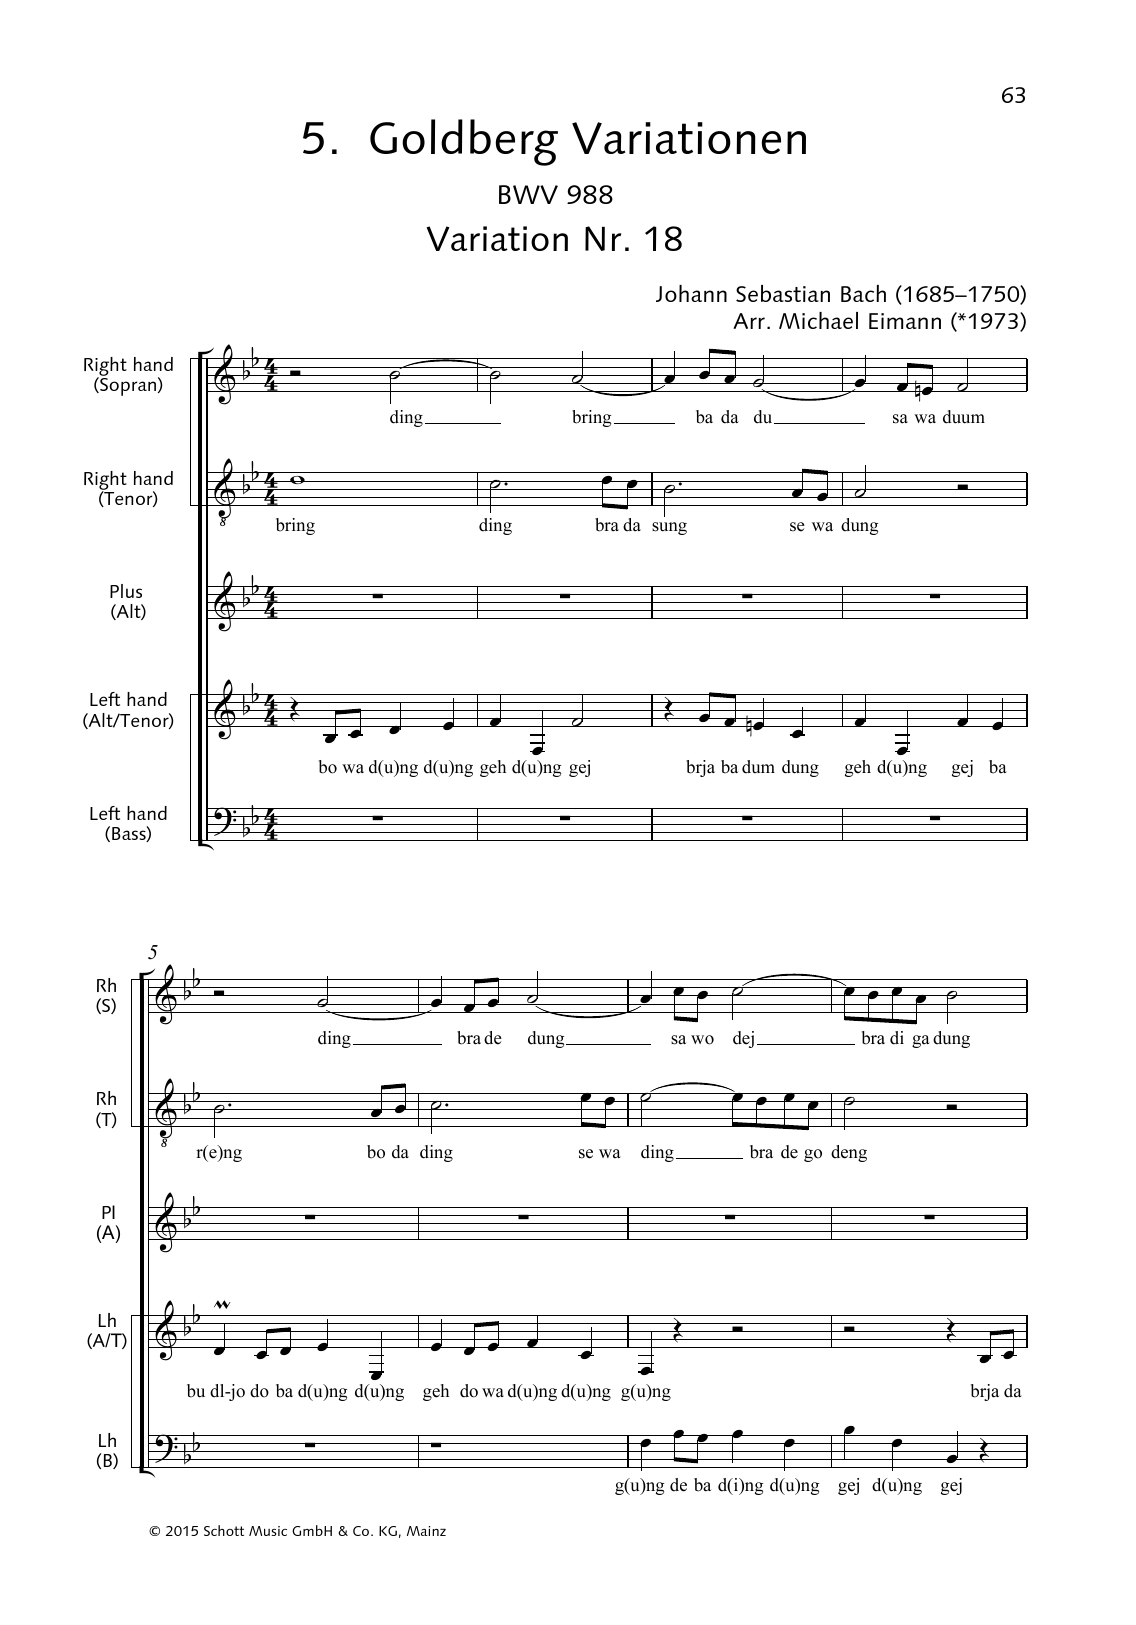 Goldberg Variations, Variation No. 18 Sheet Music